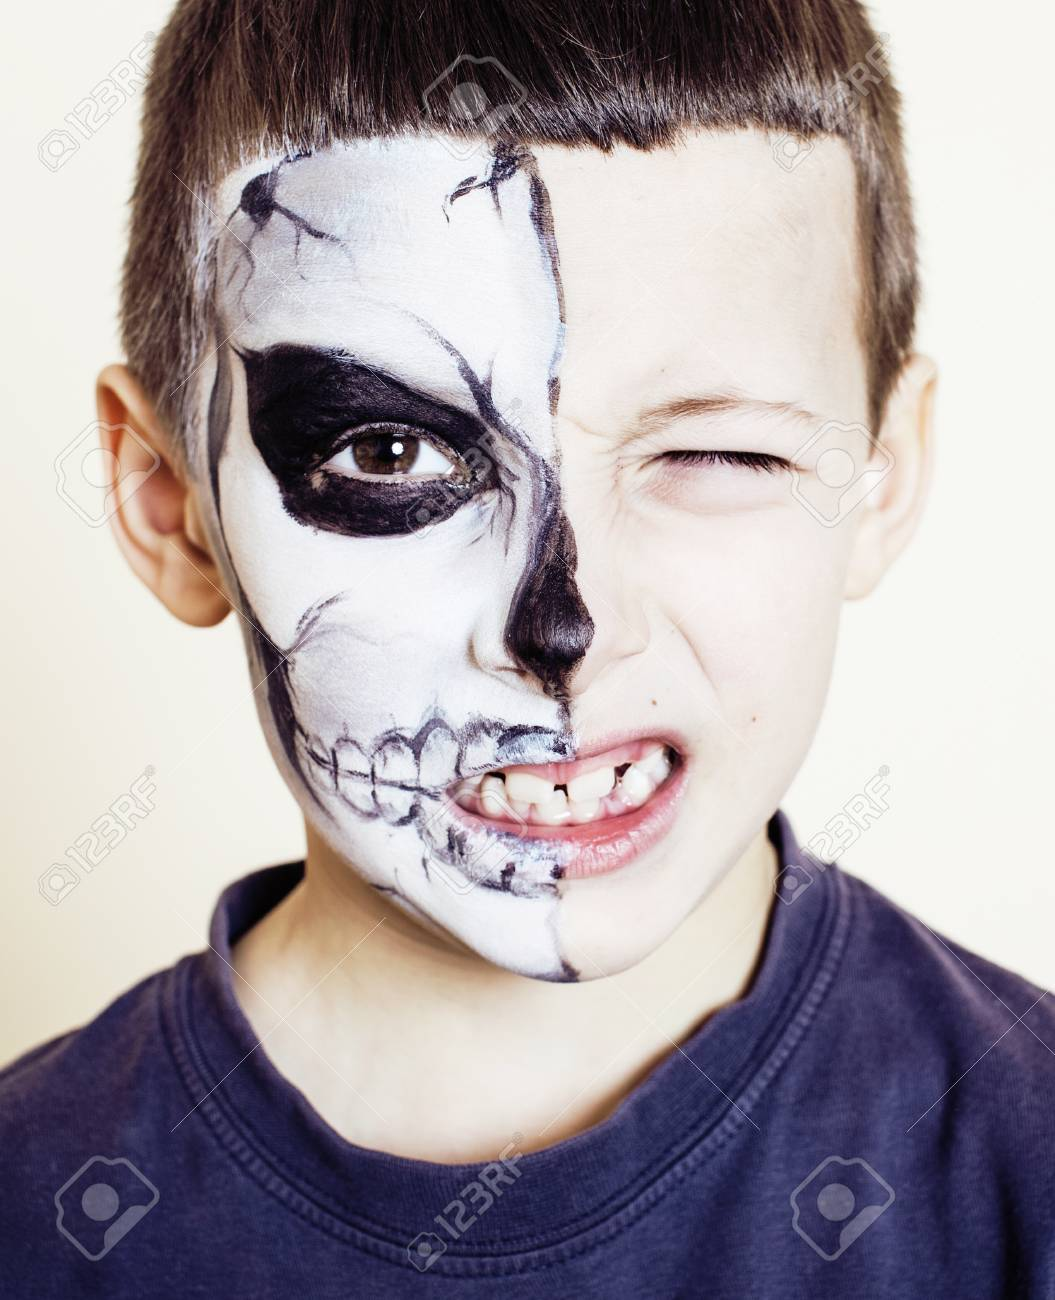 Little Cute Boy With Facepaint Like Skeleton To Celebrate Halloween Stock Photo Picture And Royalty Free Image Image 64610275